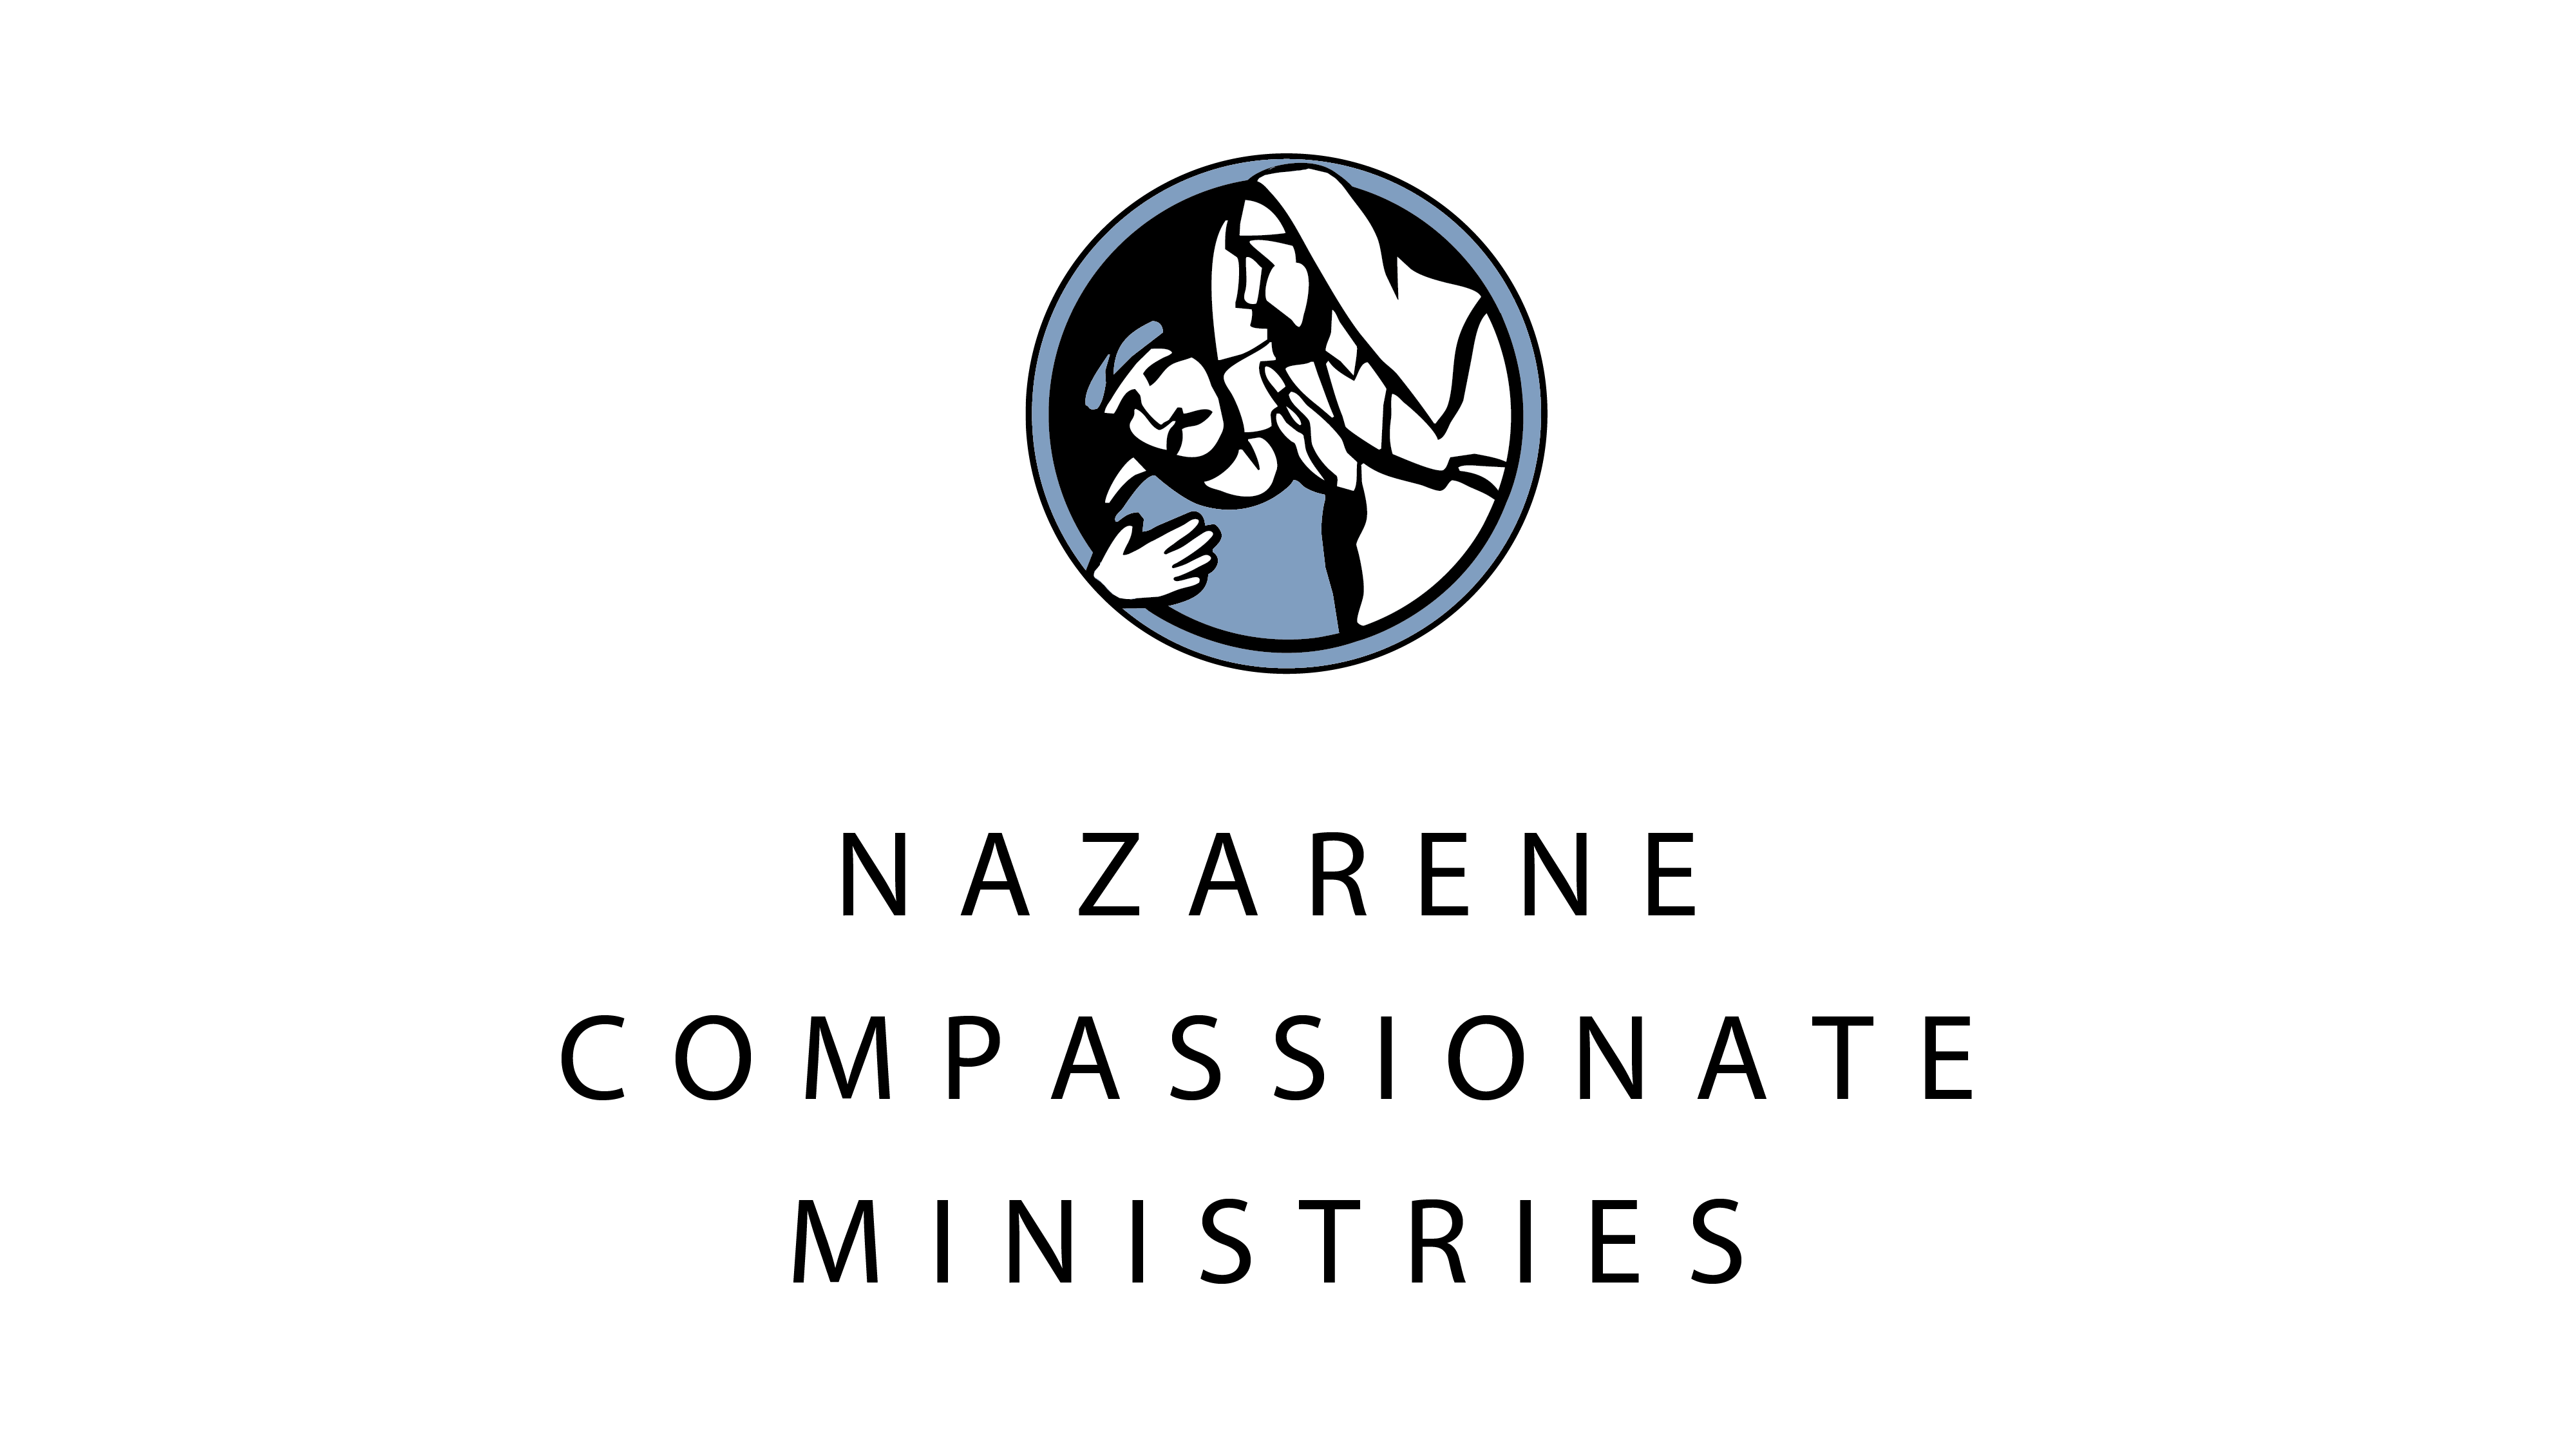 South Central Ohio District Church of the Nazarene